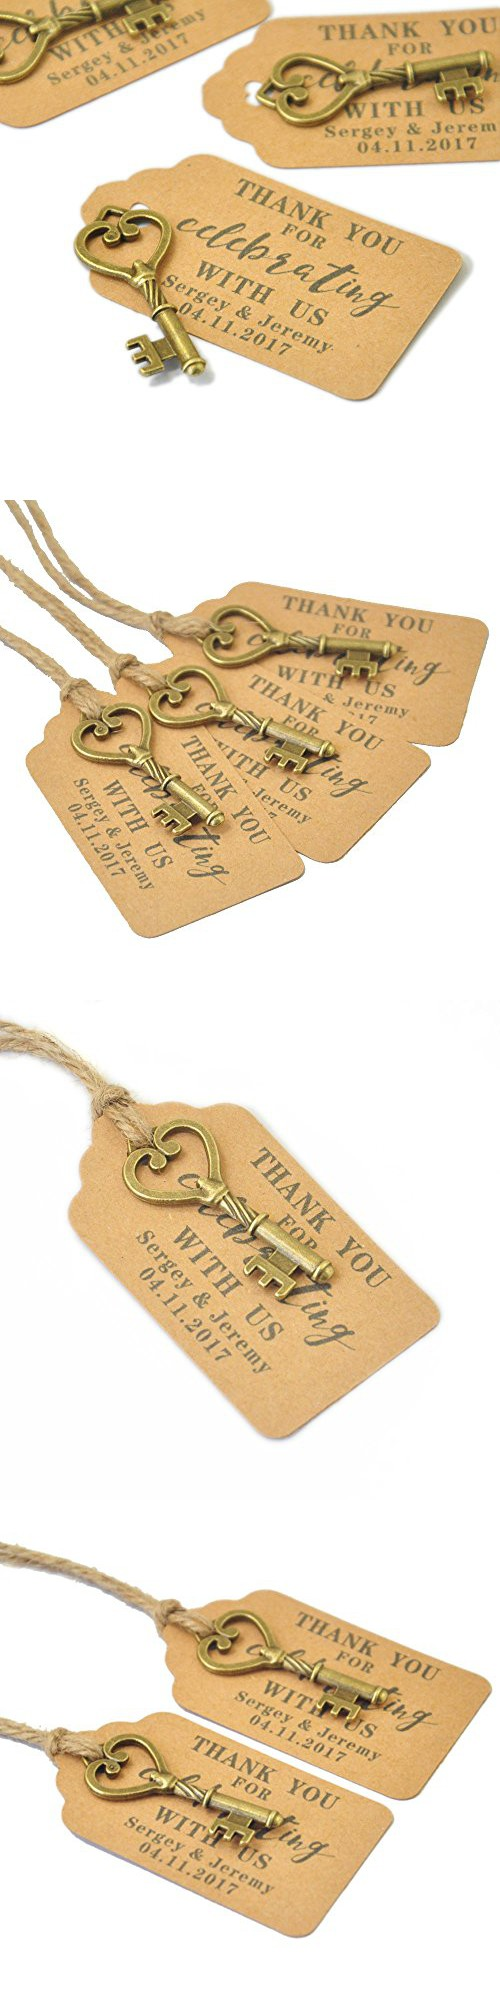 Custom Wedding Tags , Antique Key Gift Tags, Personalized Wedding ...